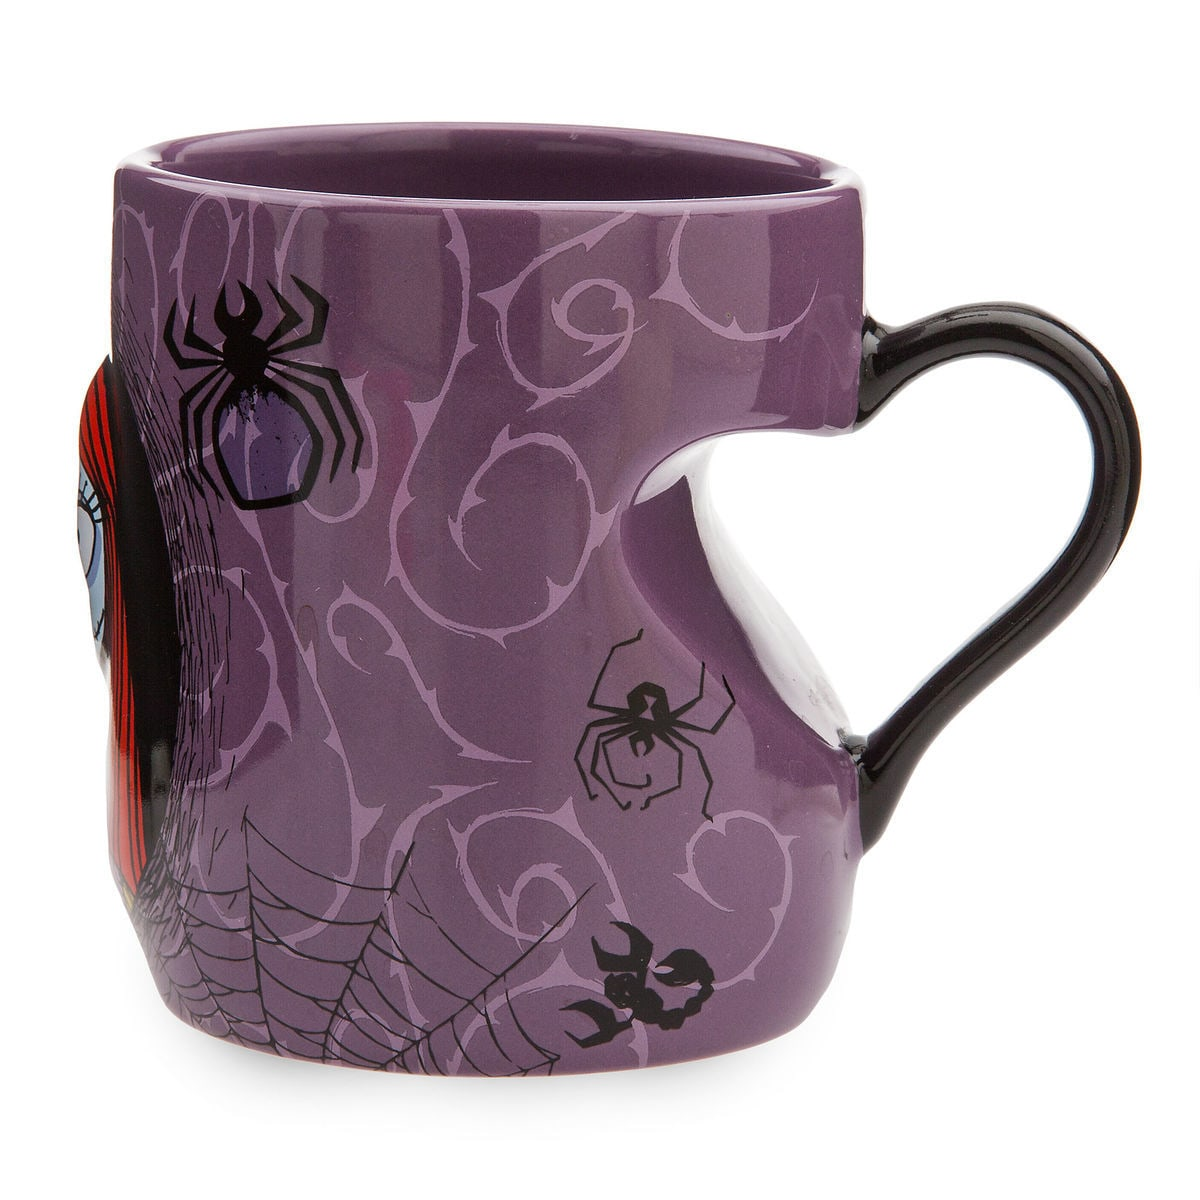 Sally Couples Mug - Nightmare Before Christmas | shopDisney